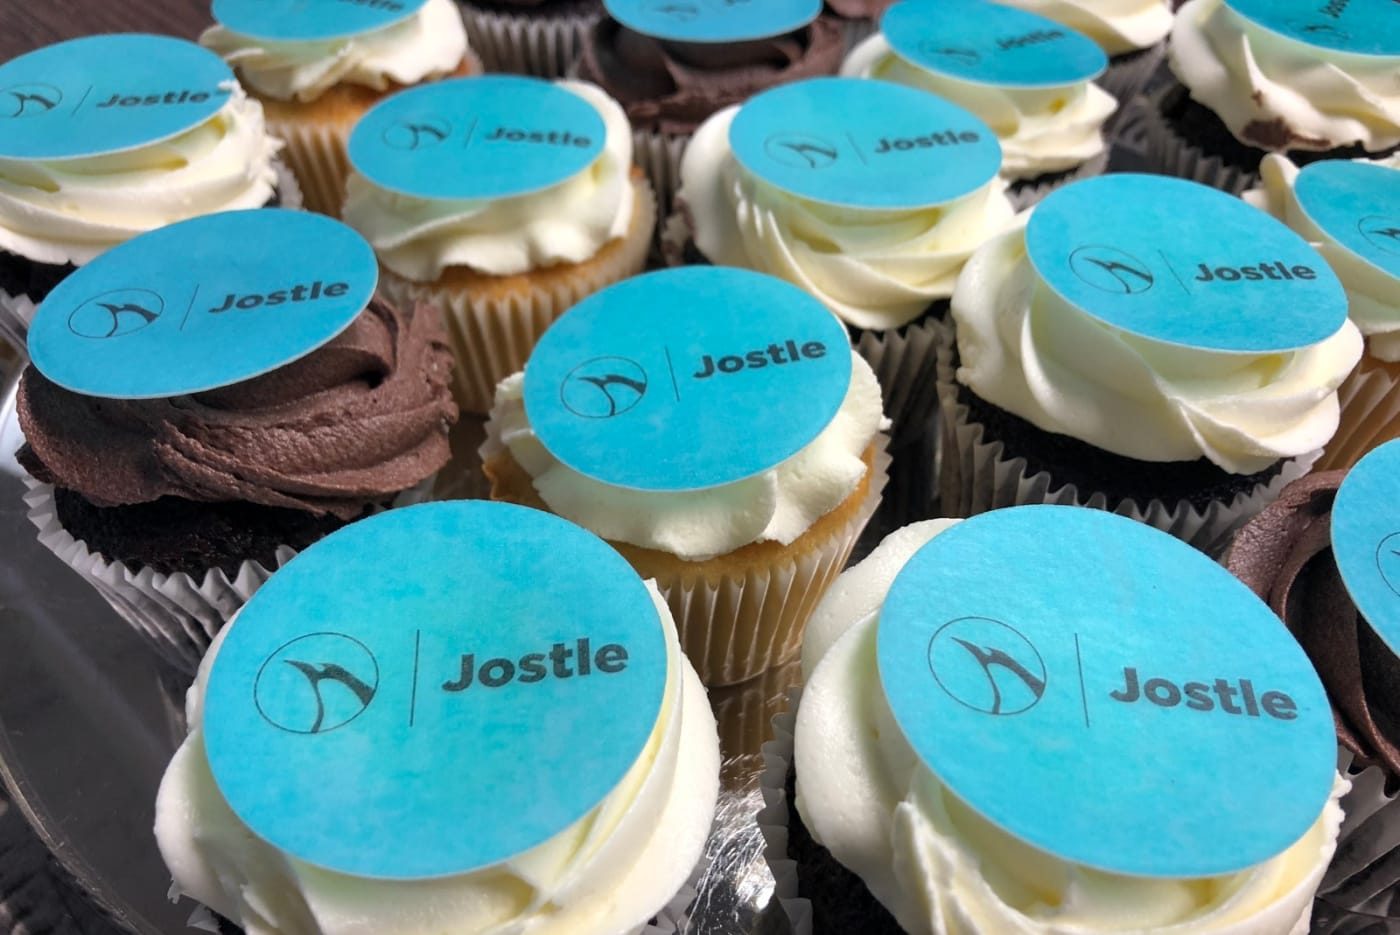 Launch day cupcakes